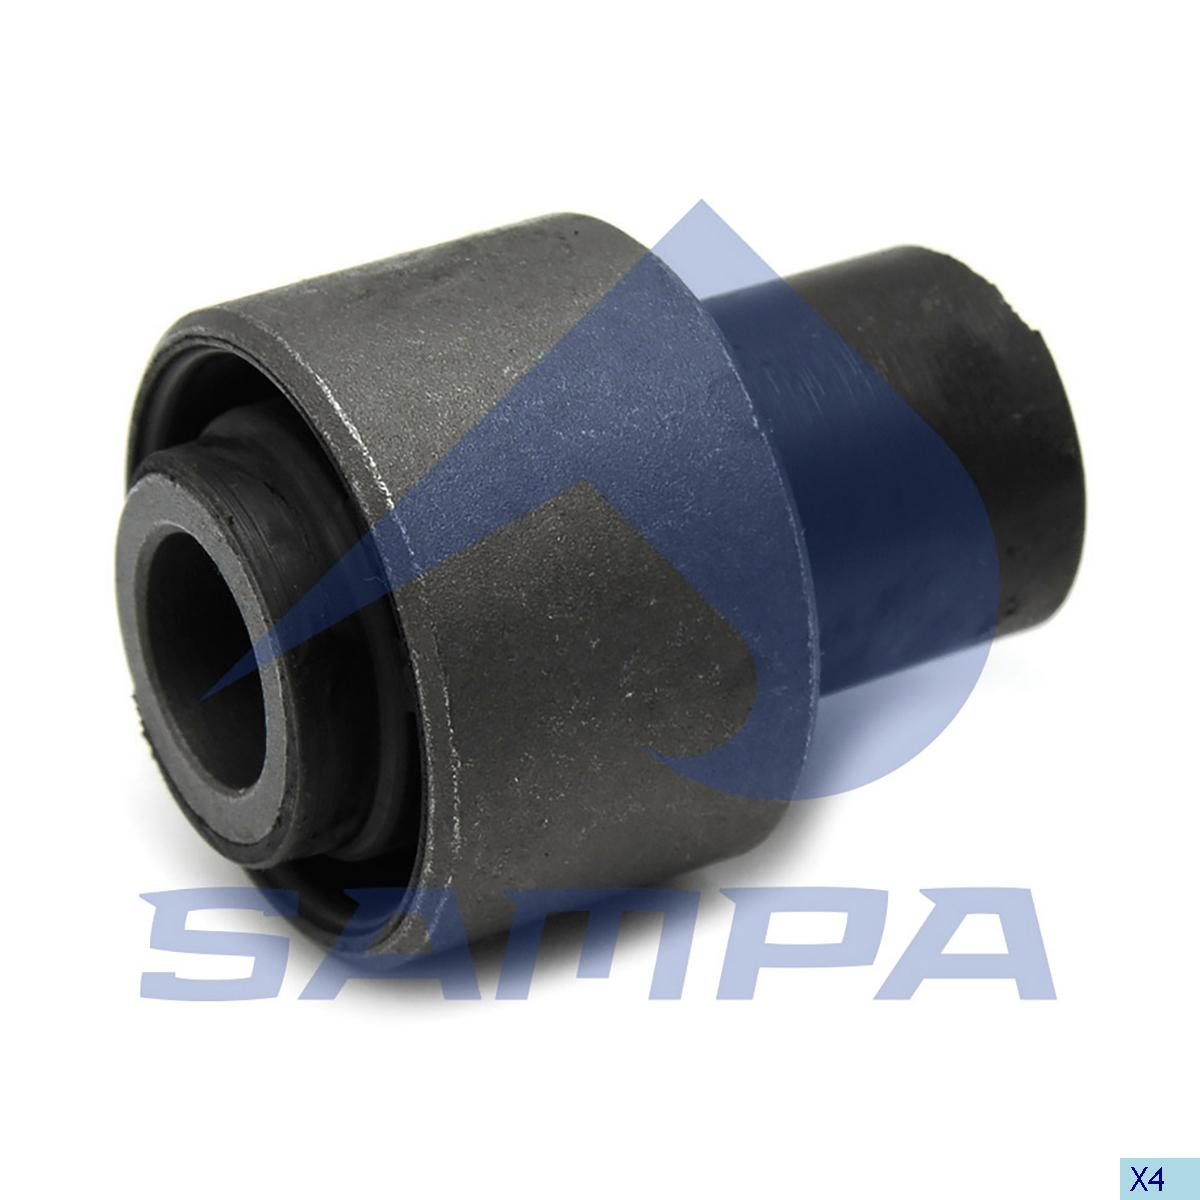 Rubber Bushing, Cab Tilt, Man, Cab